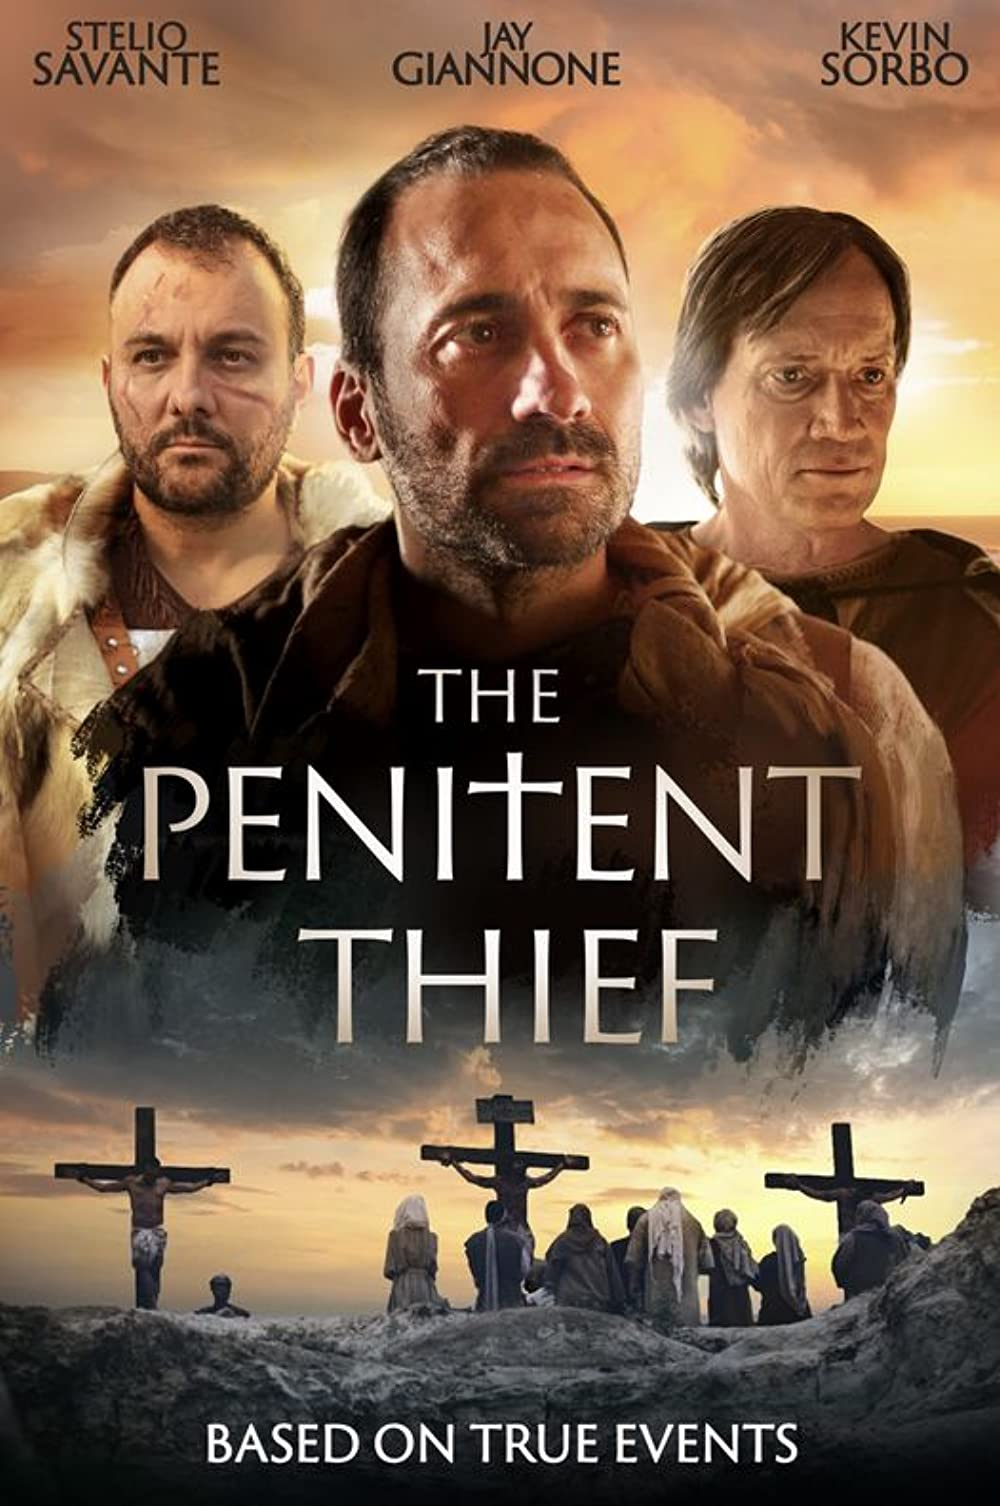 The Penitent Thief 2020 English 720p HDRip 800MB Watch Online and Download